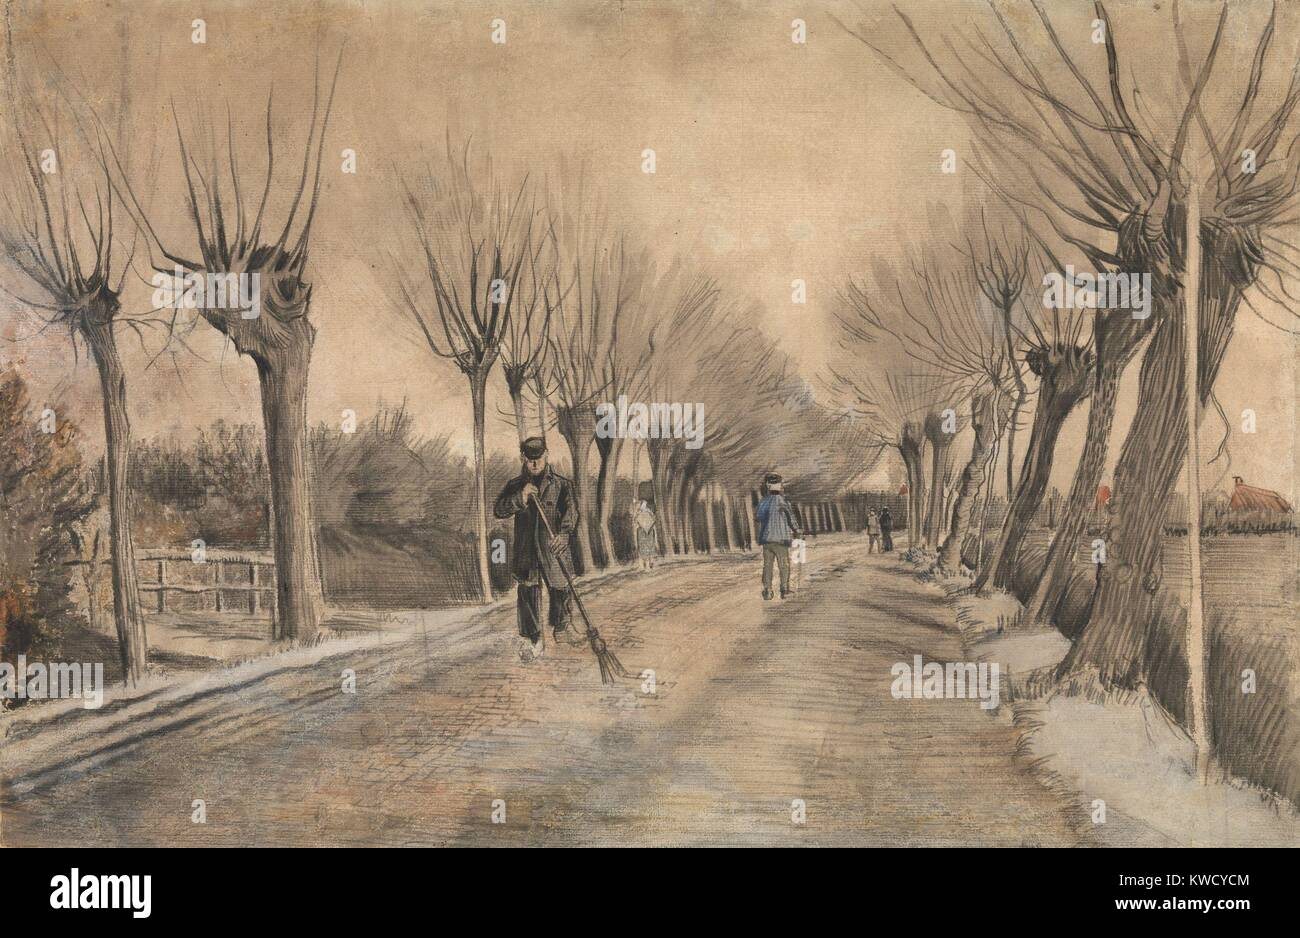 Road in Etten, by Vincent Van Gogh, 1881, Dutch Post-Impressionist drawing. This work was created during van Goghs Stock Photo